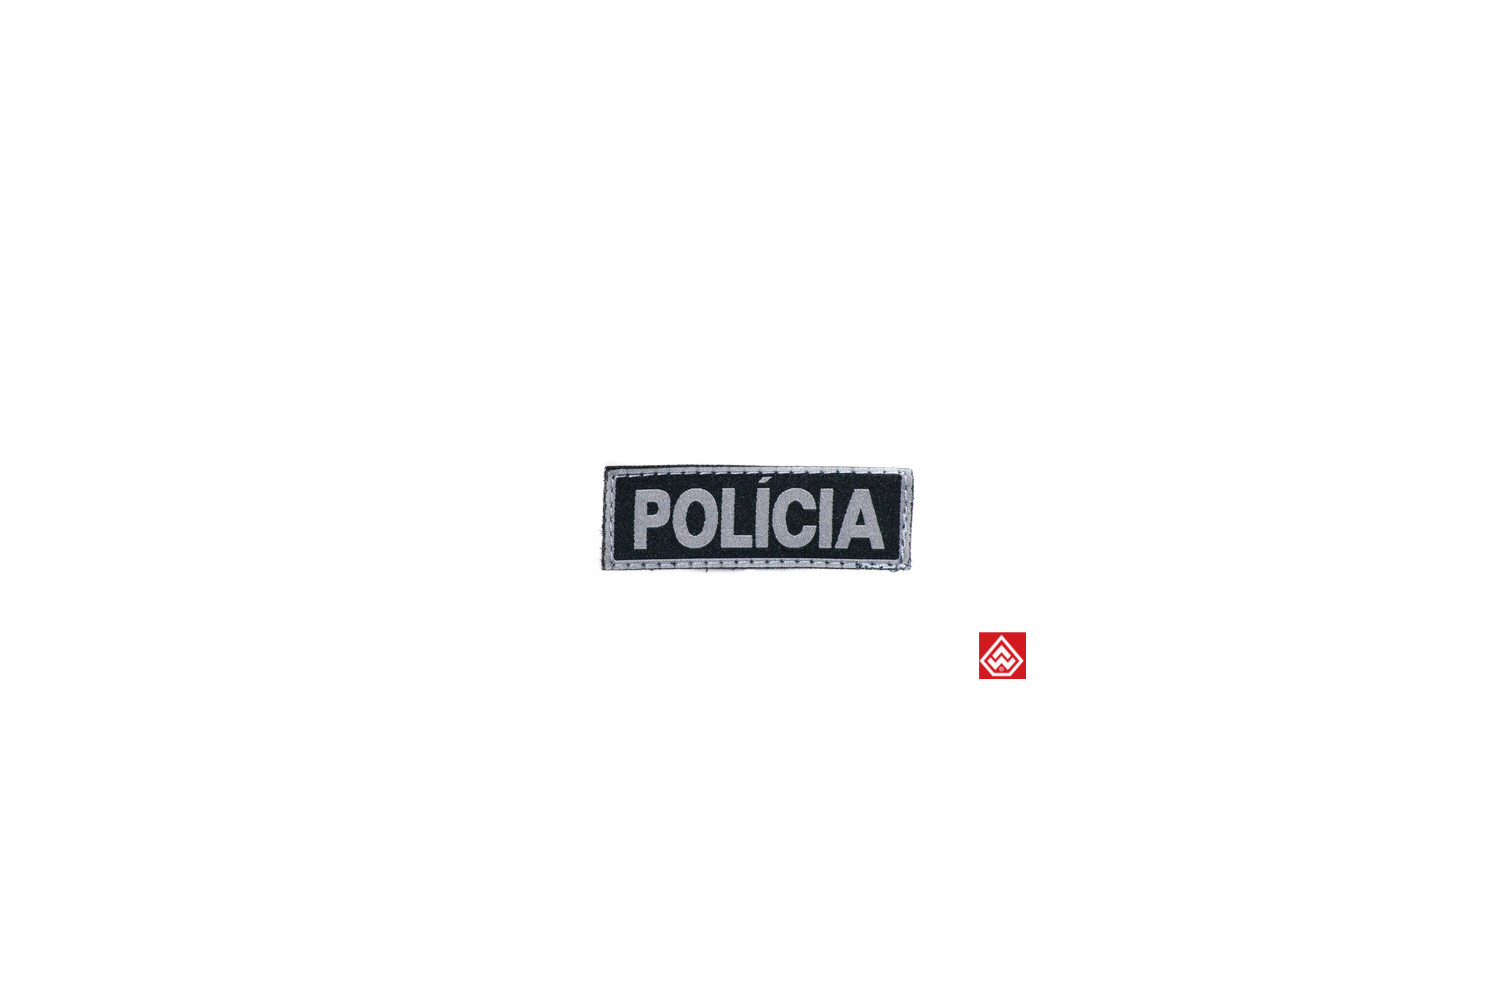 Patch Policia P